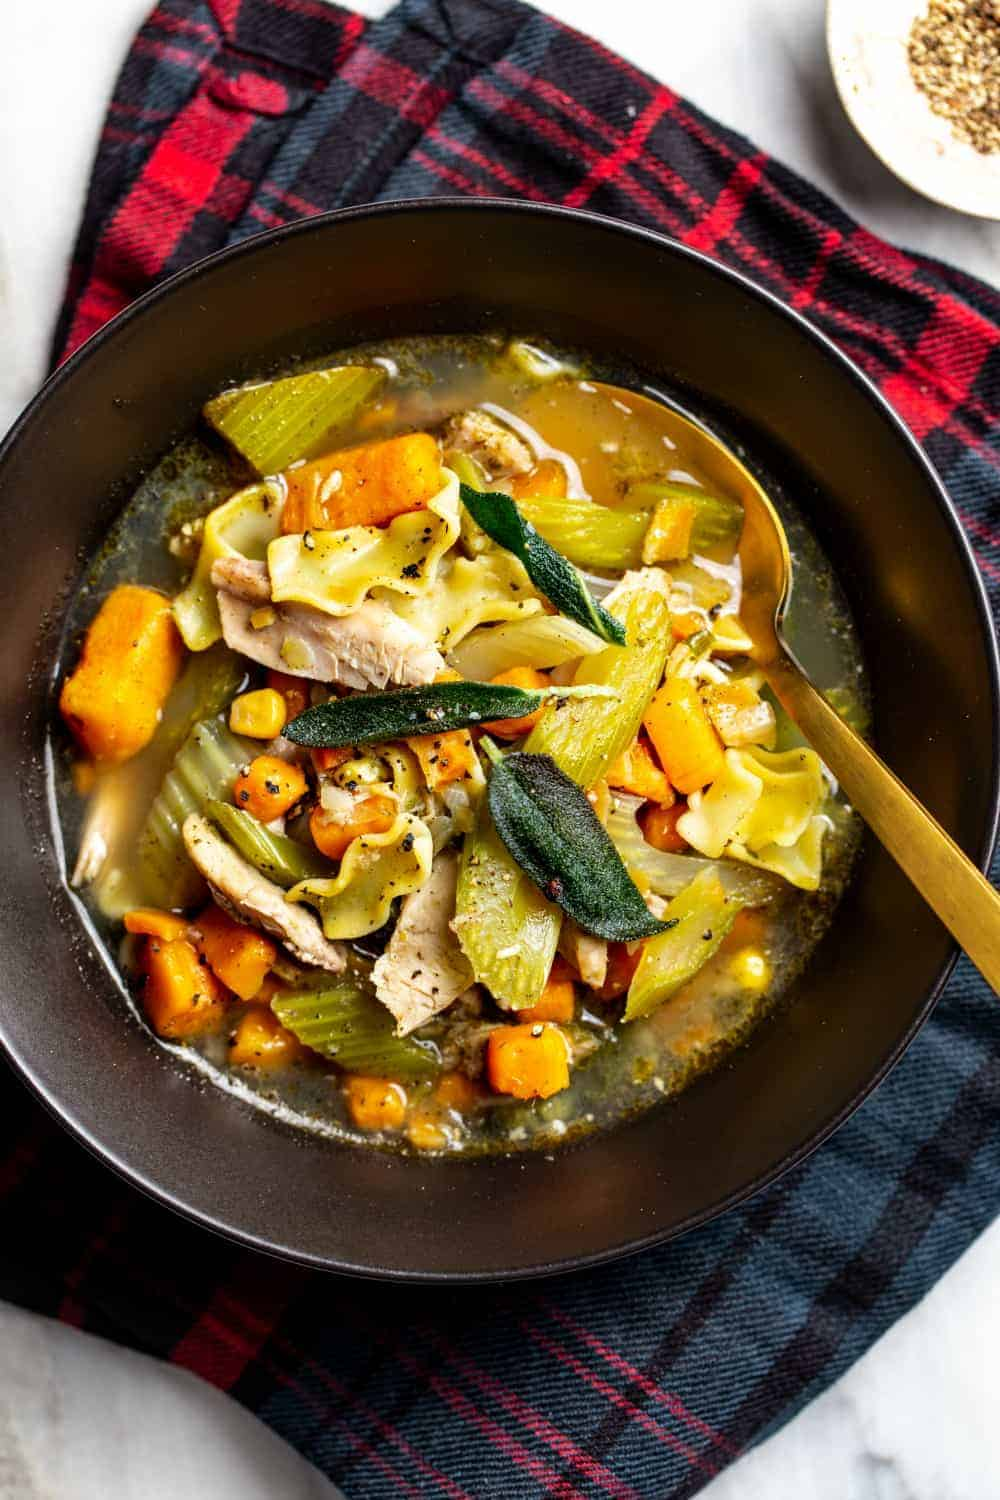 Gold spoon in a bowl of turkey noodle soup garnished with crispy sage